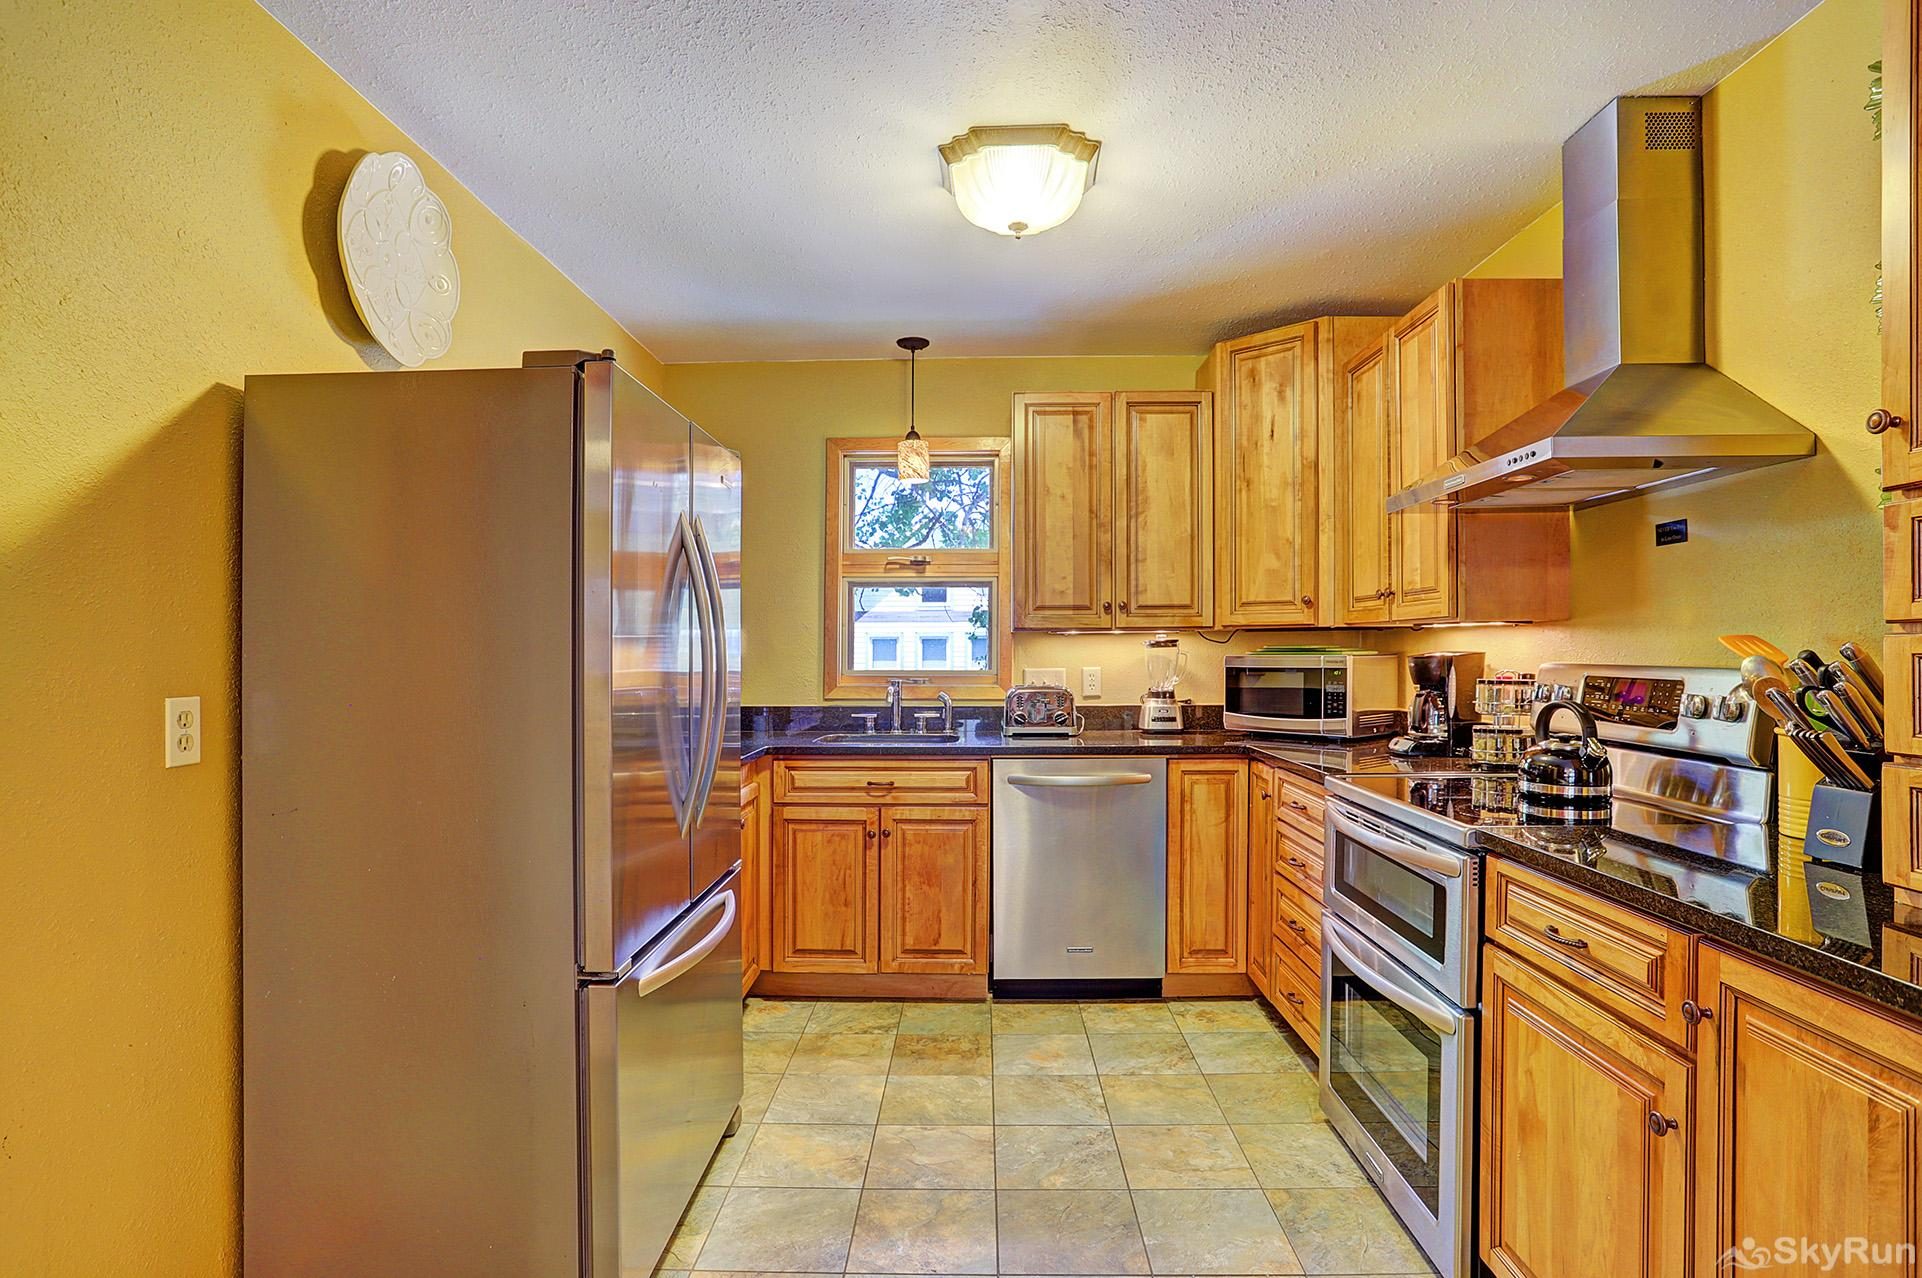 Imperial View Cottage Fully equipped kitchen with stainless appliances